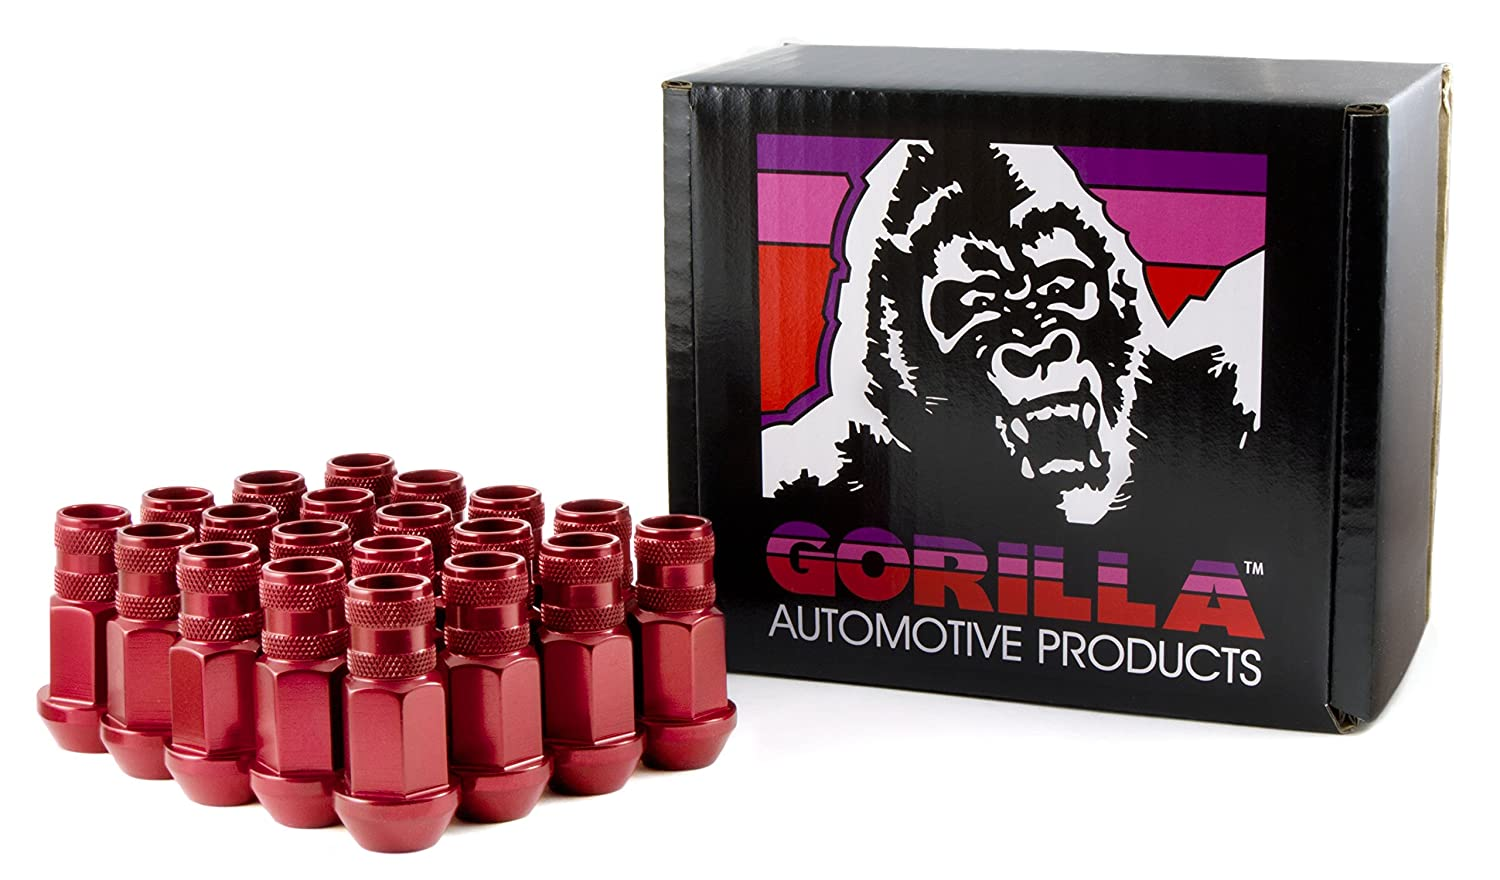 Gorilla Automotive 44038RD-20 Red 12mm x 1.50 Thread Size Aluminum Open End Racing Lug Nut, Pack of 20